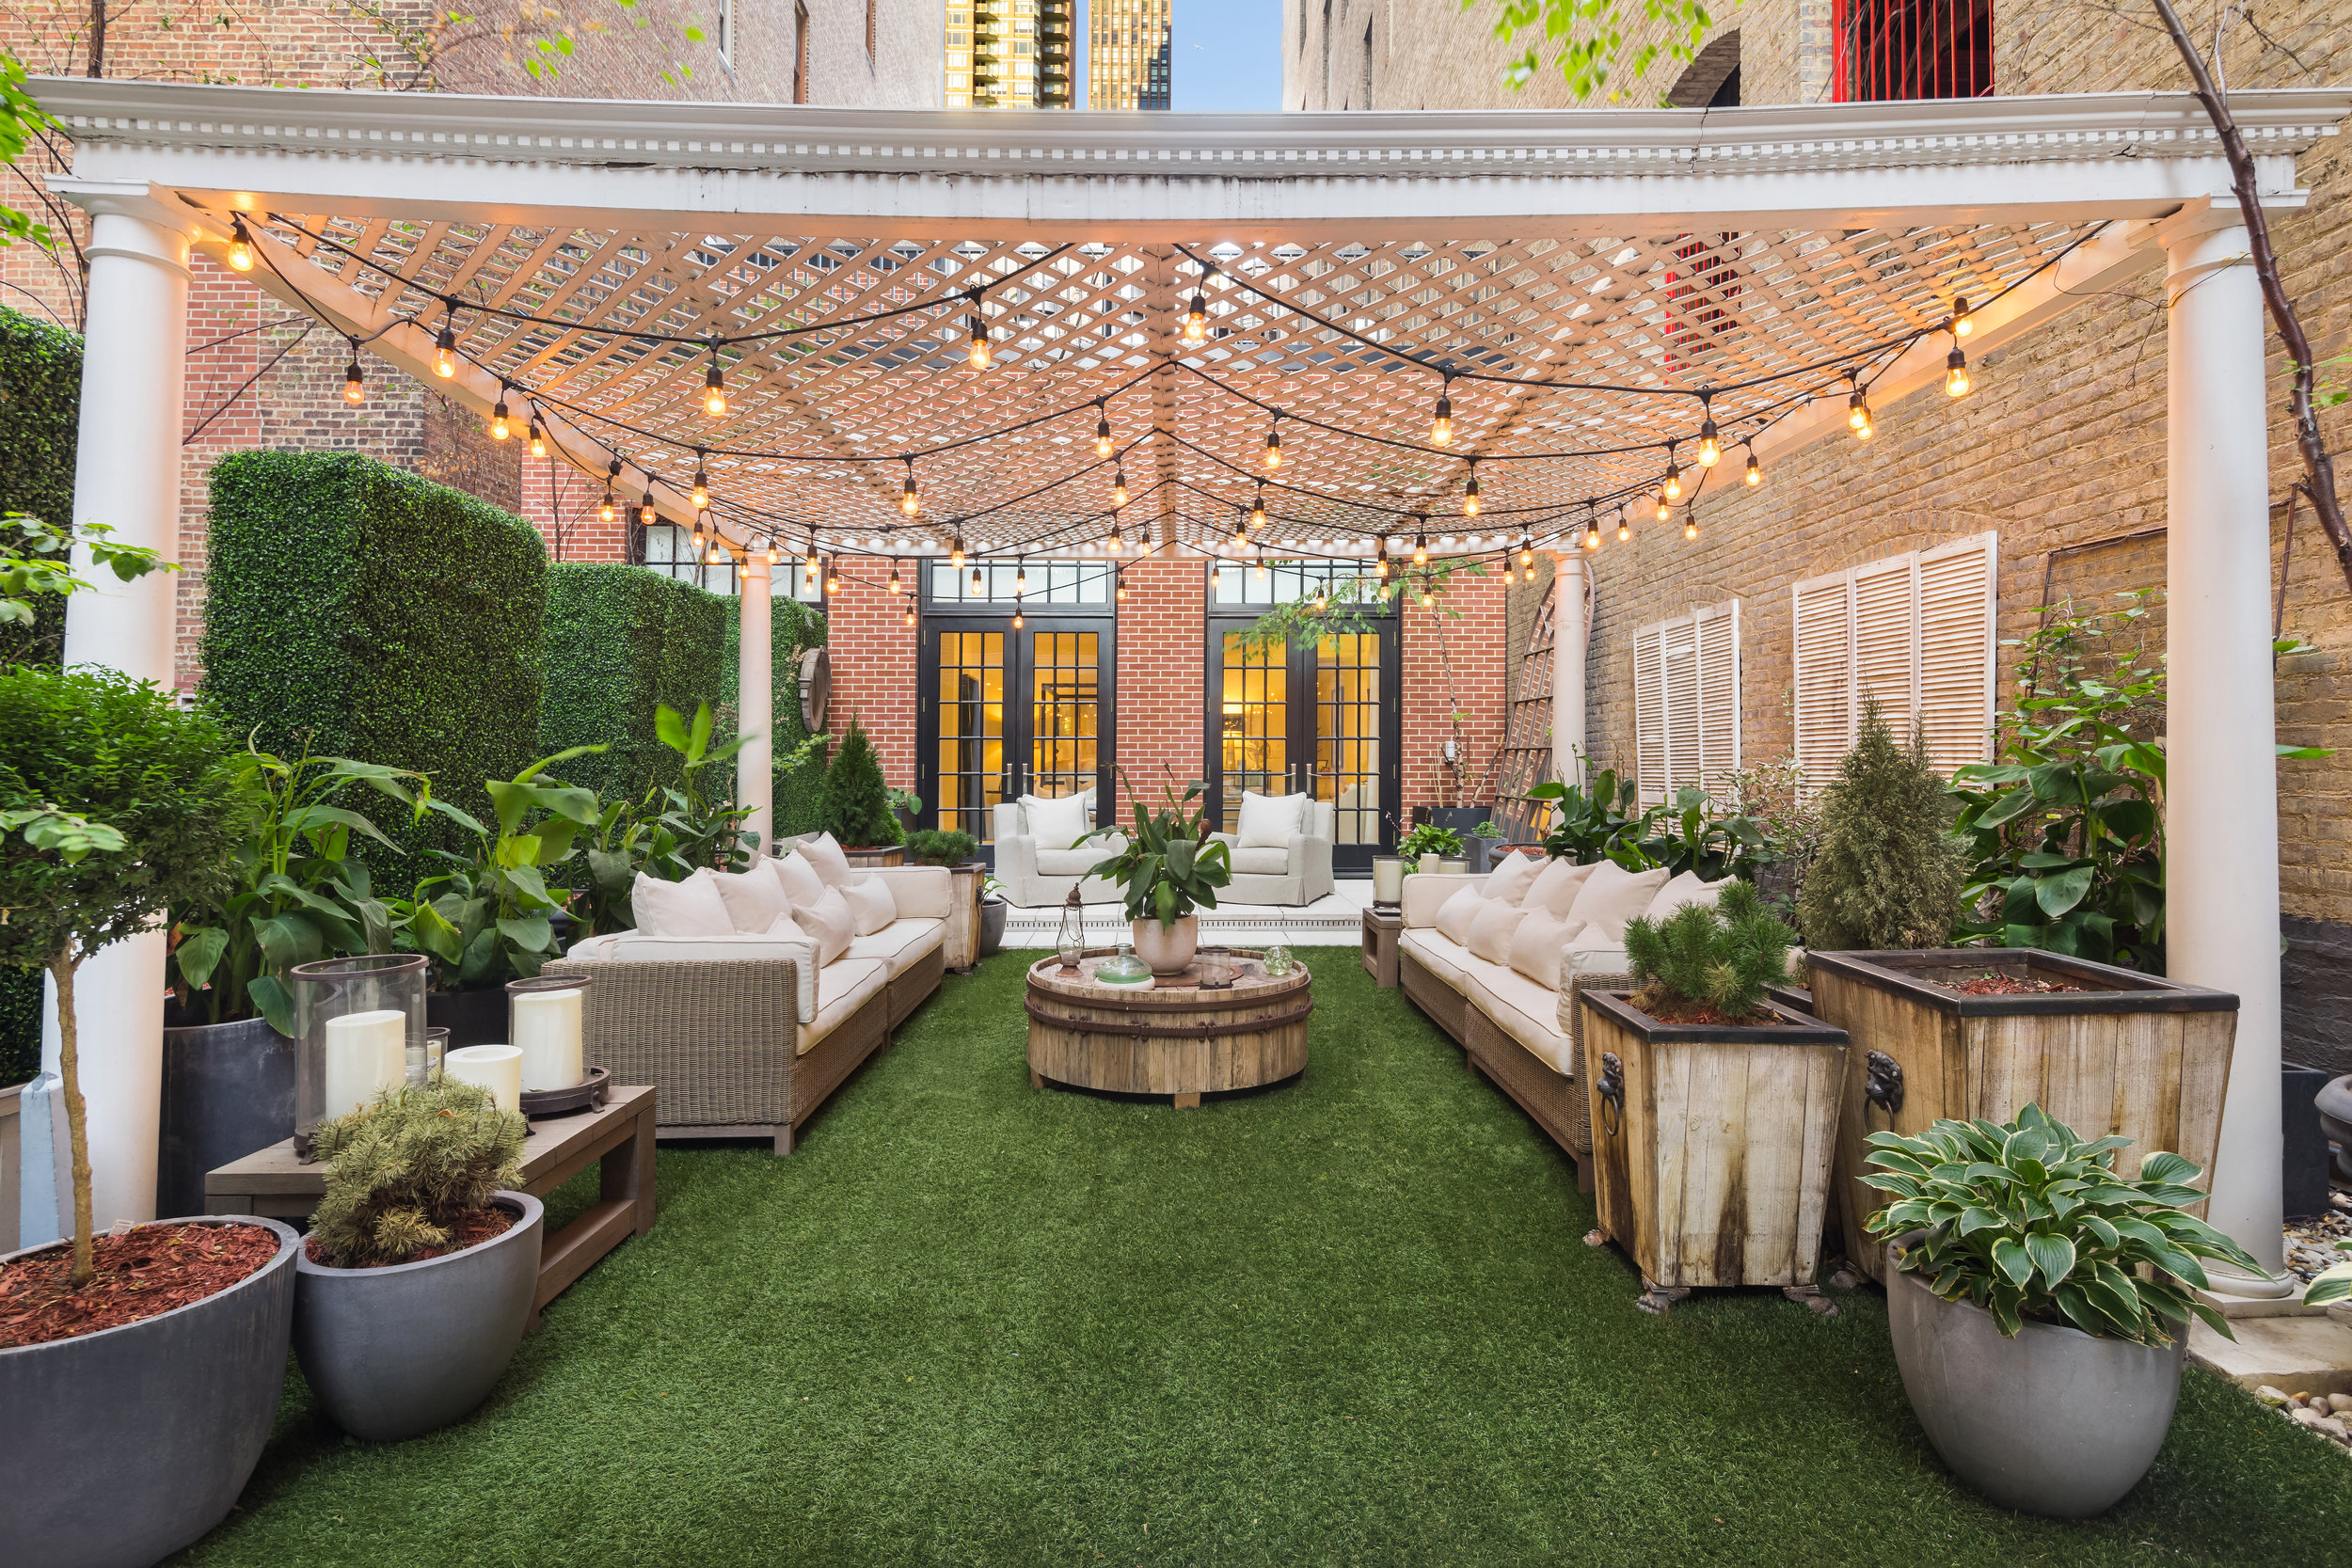 Featured Listing: Jennifer Lopez Lists Massive Penthouse With Private Courtyard in The Whitman